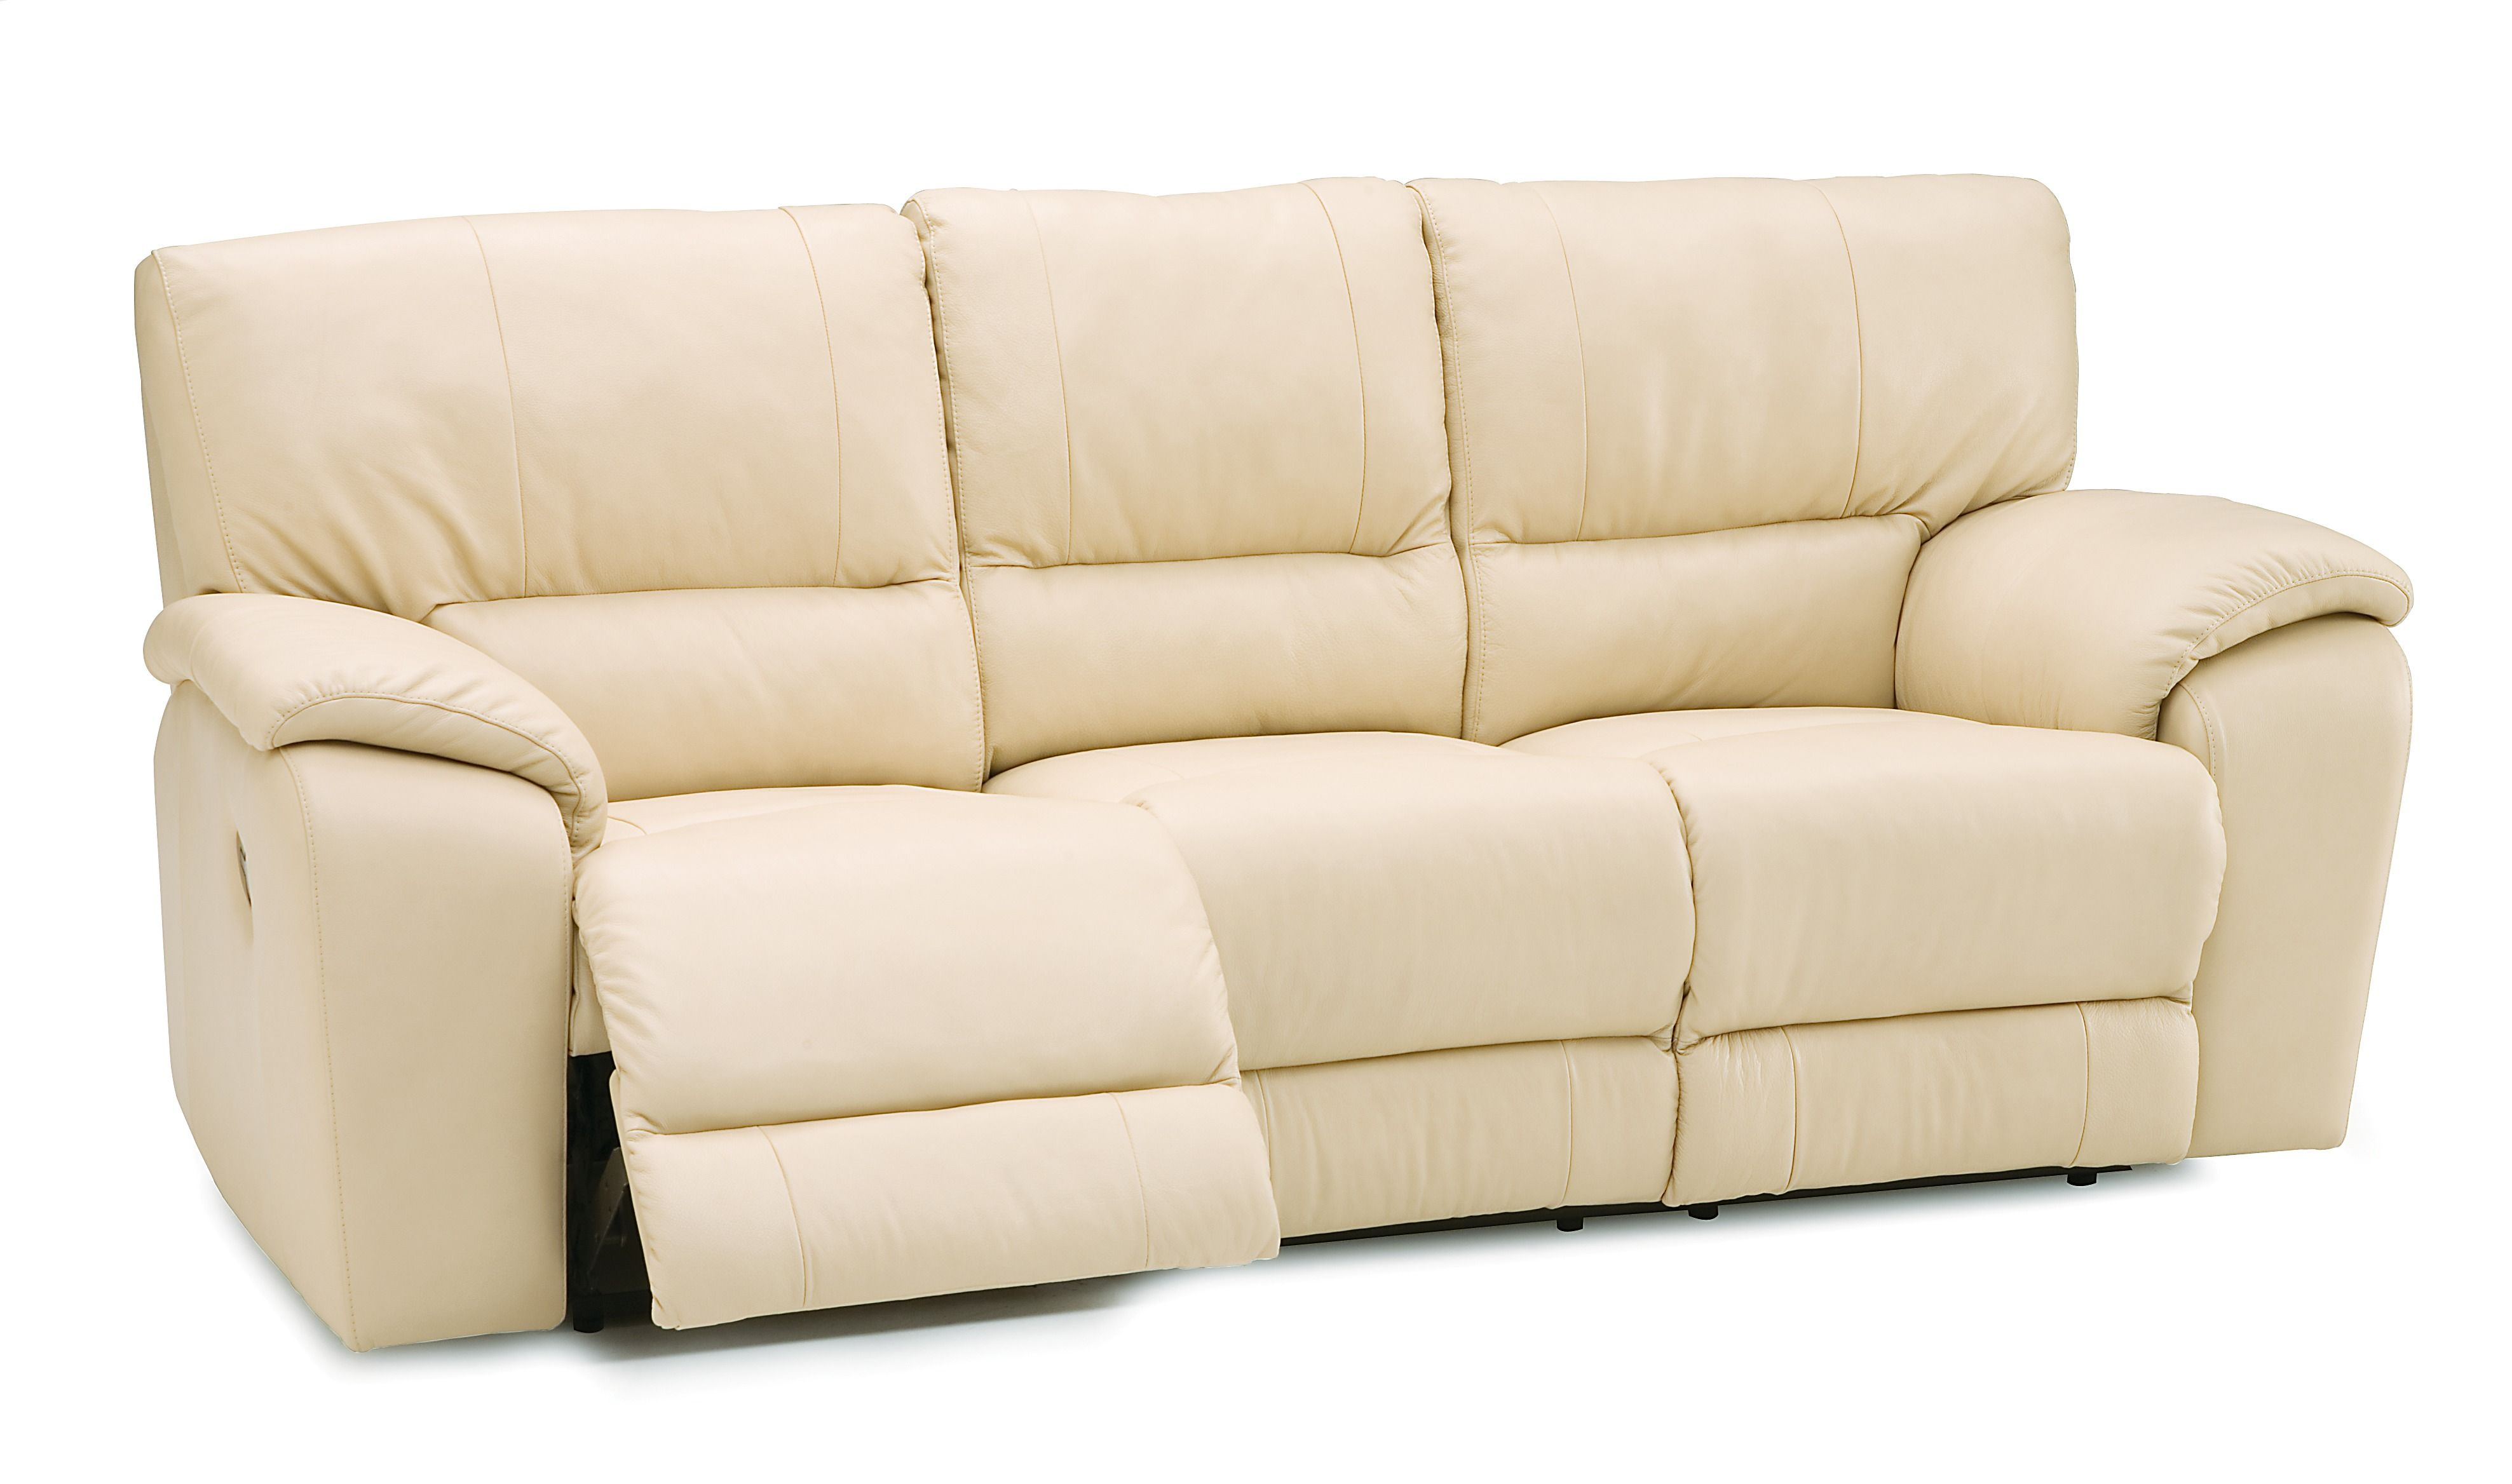 Shields 41077 46077 Reclining Sofa Collection 450